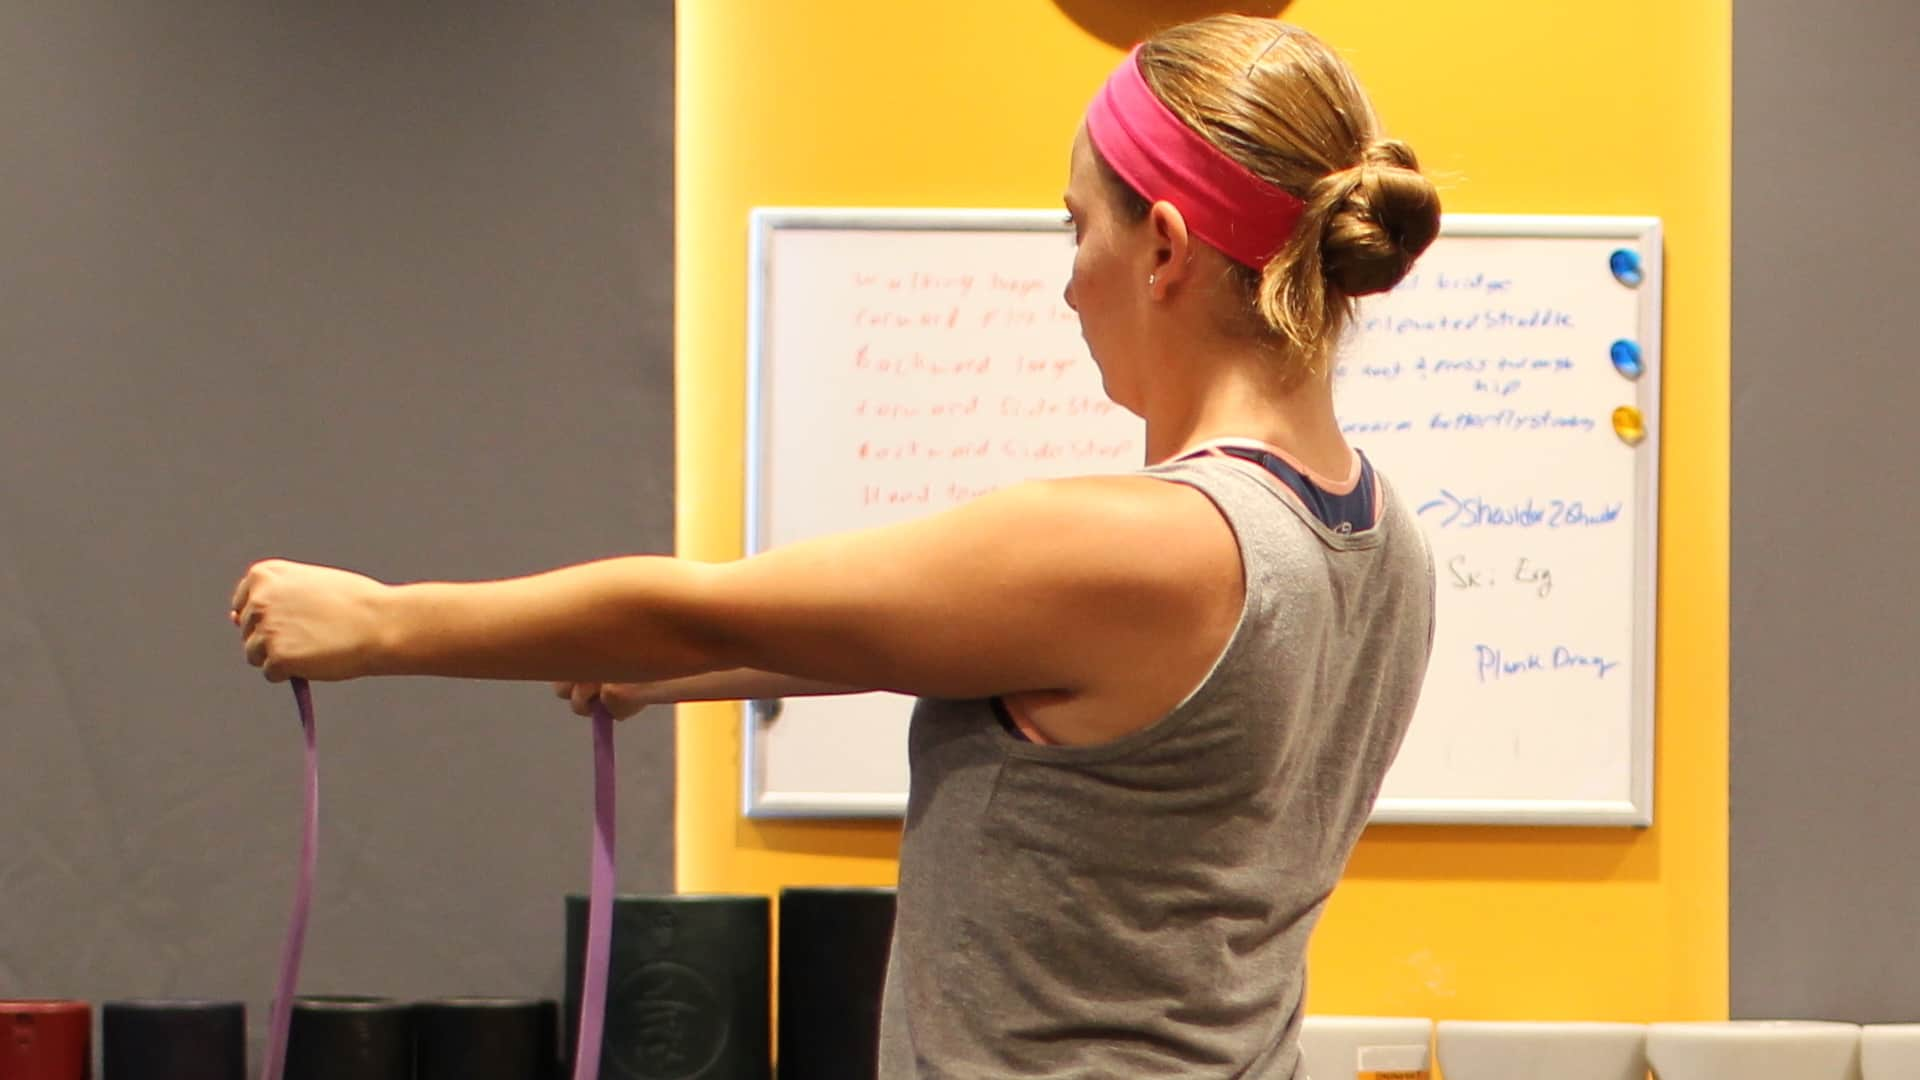 Band Pull Apart, Shoulders, Warmup Exercises